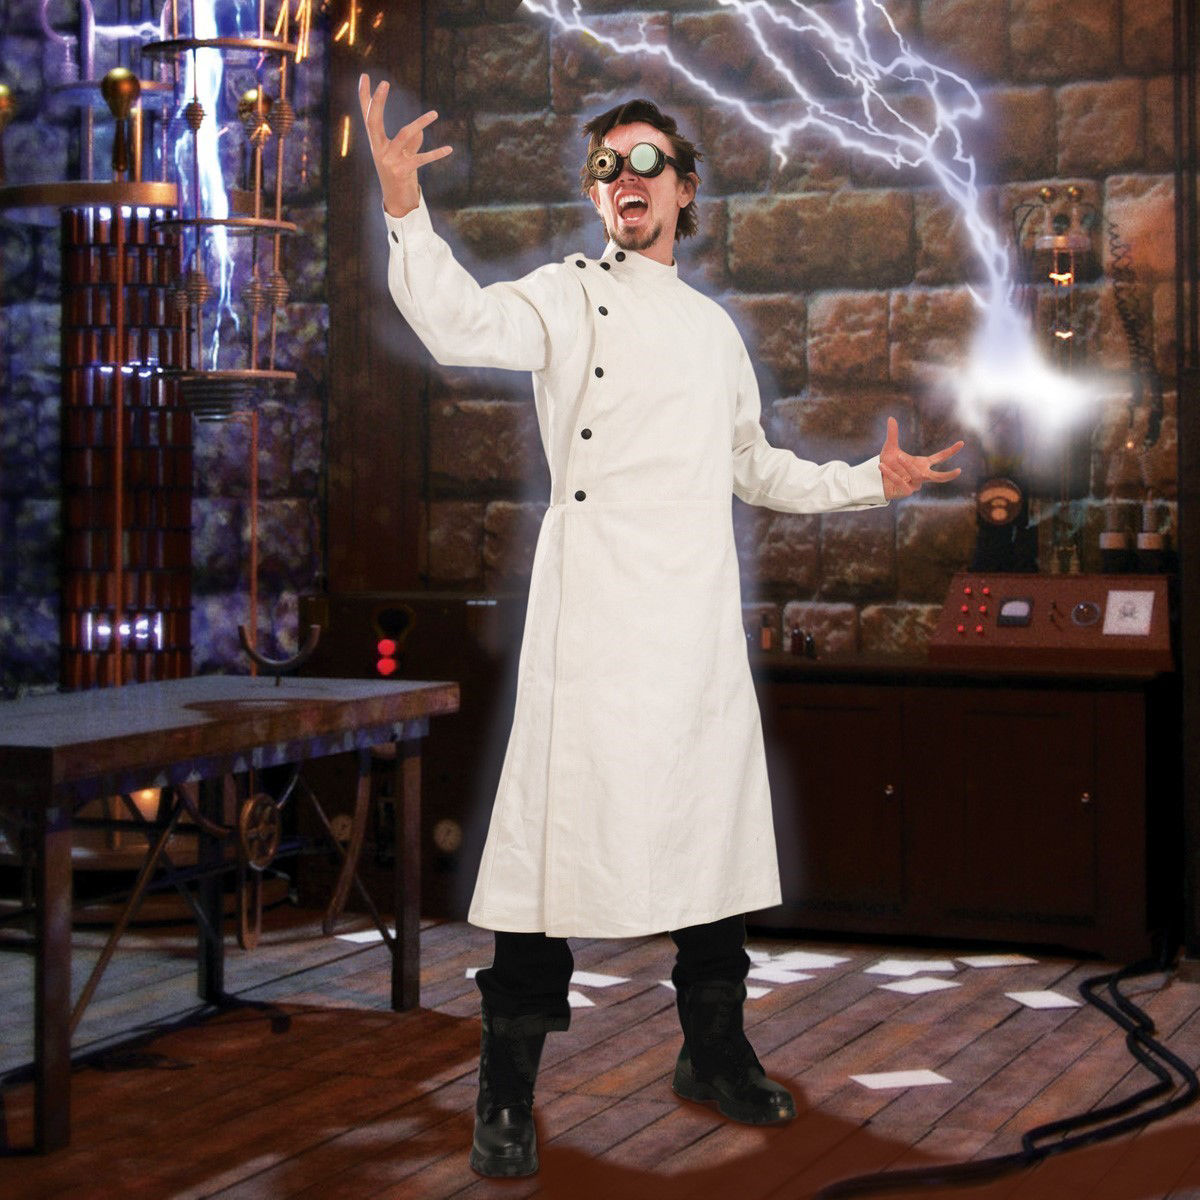 Mad Scientist Victorian White Lab Coat